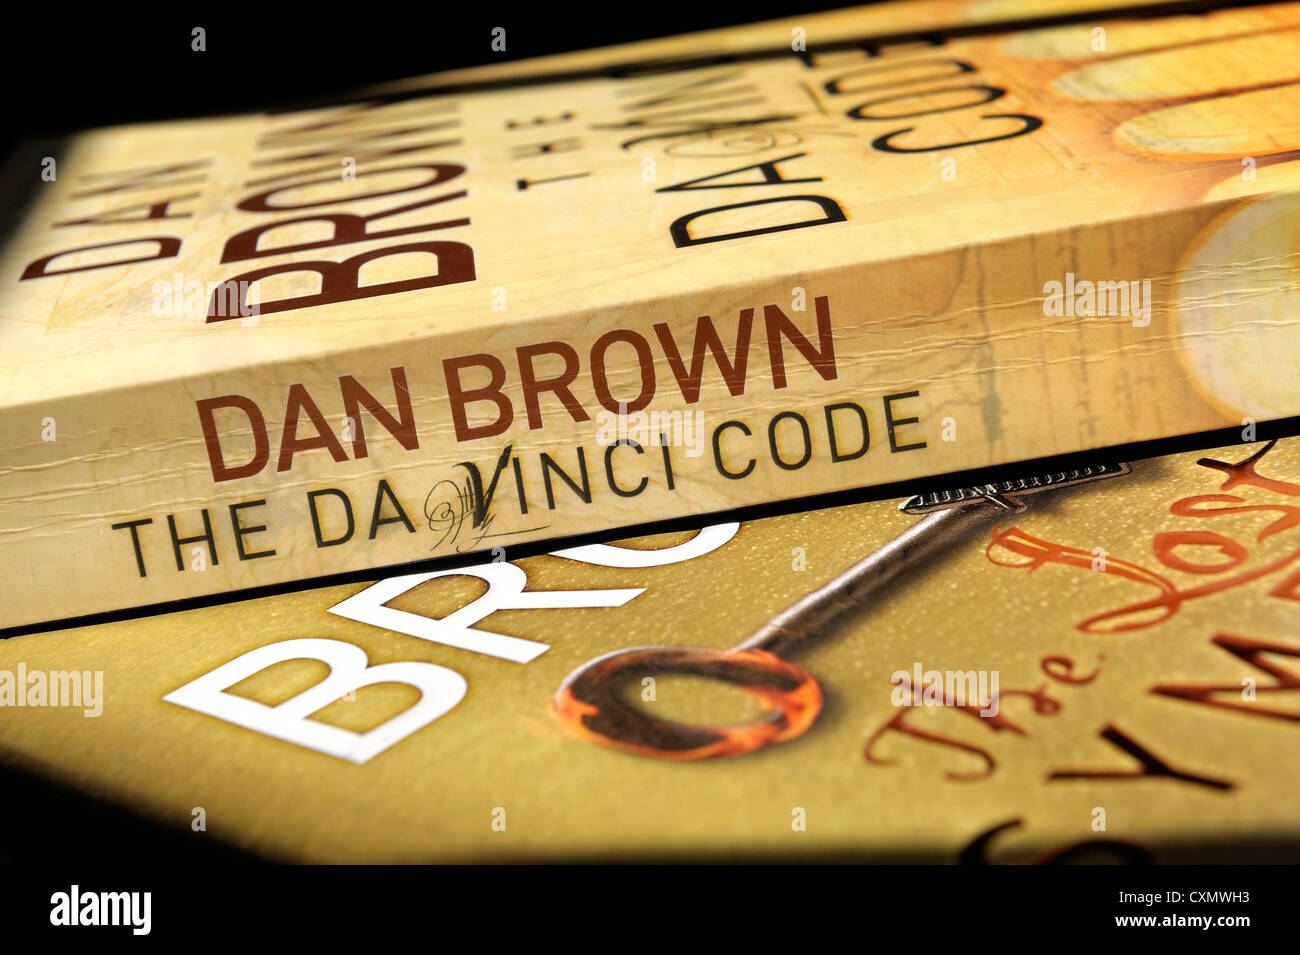 the da vinci code by dan brown essay Approximately three people still haven't read dan brown's the da vinci code:  mark liberman, david lupher, and reportedly at least one other.